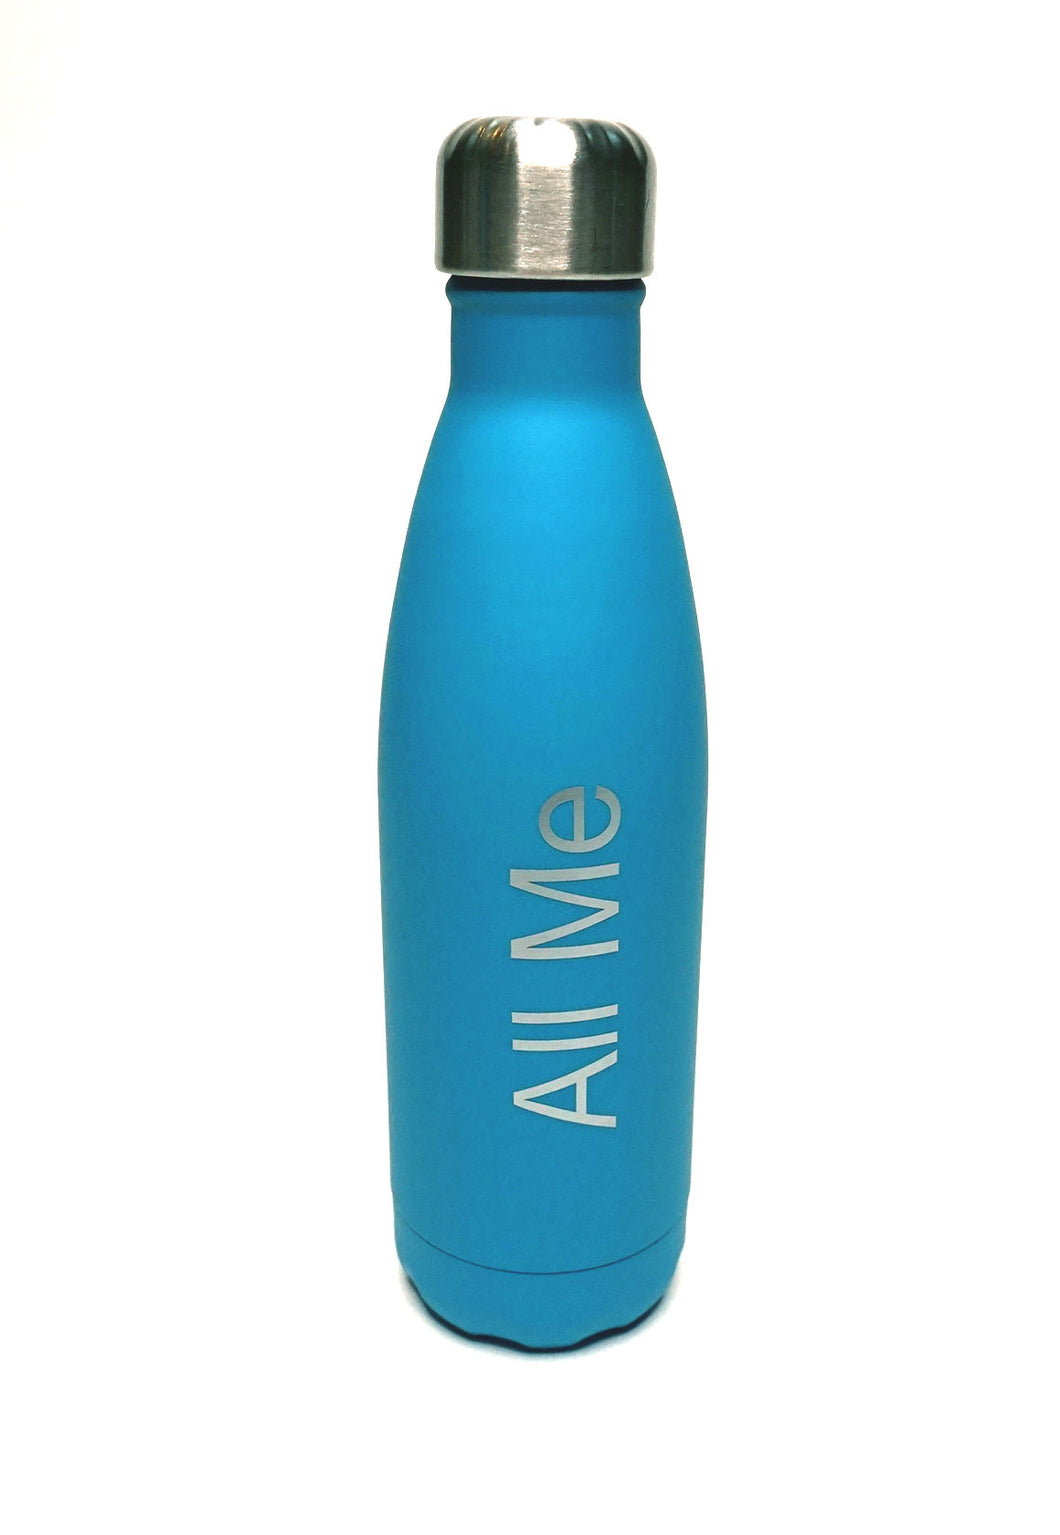 Womens - Blue Metal Drinking Bottle - All Me - accessories - TWOTHREE